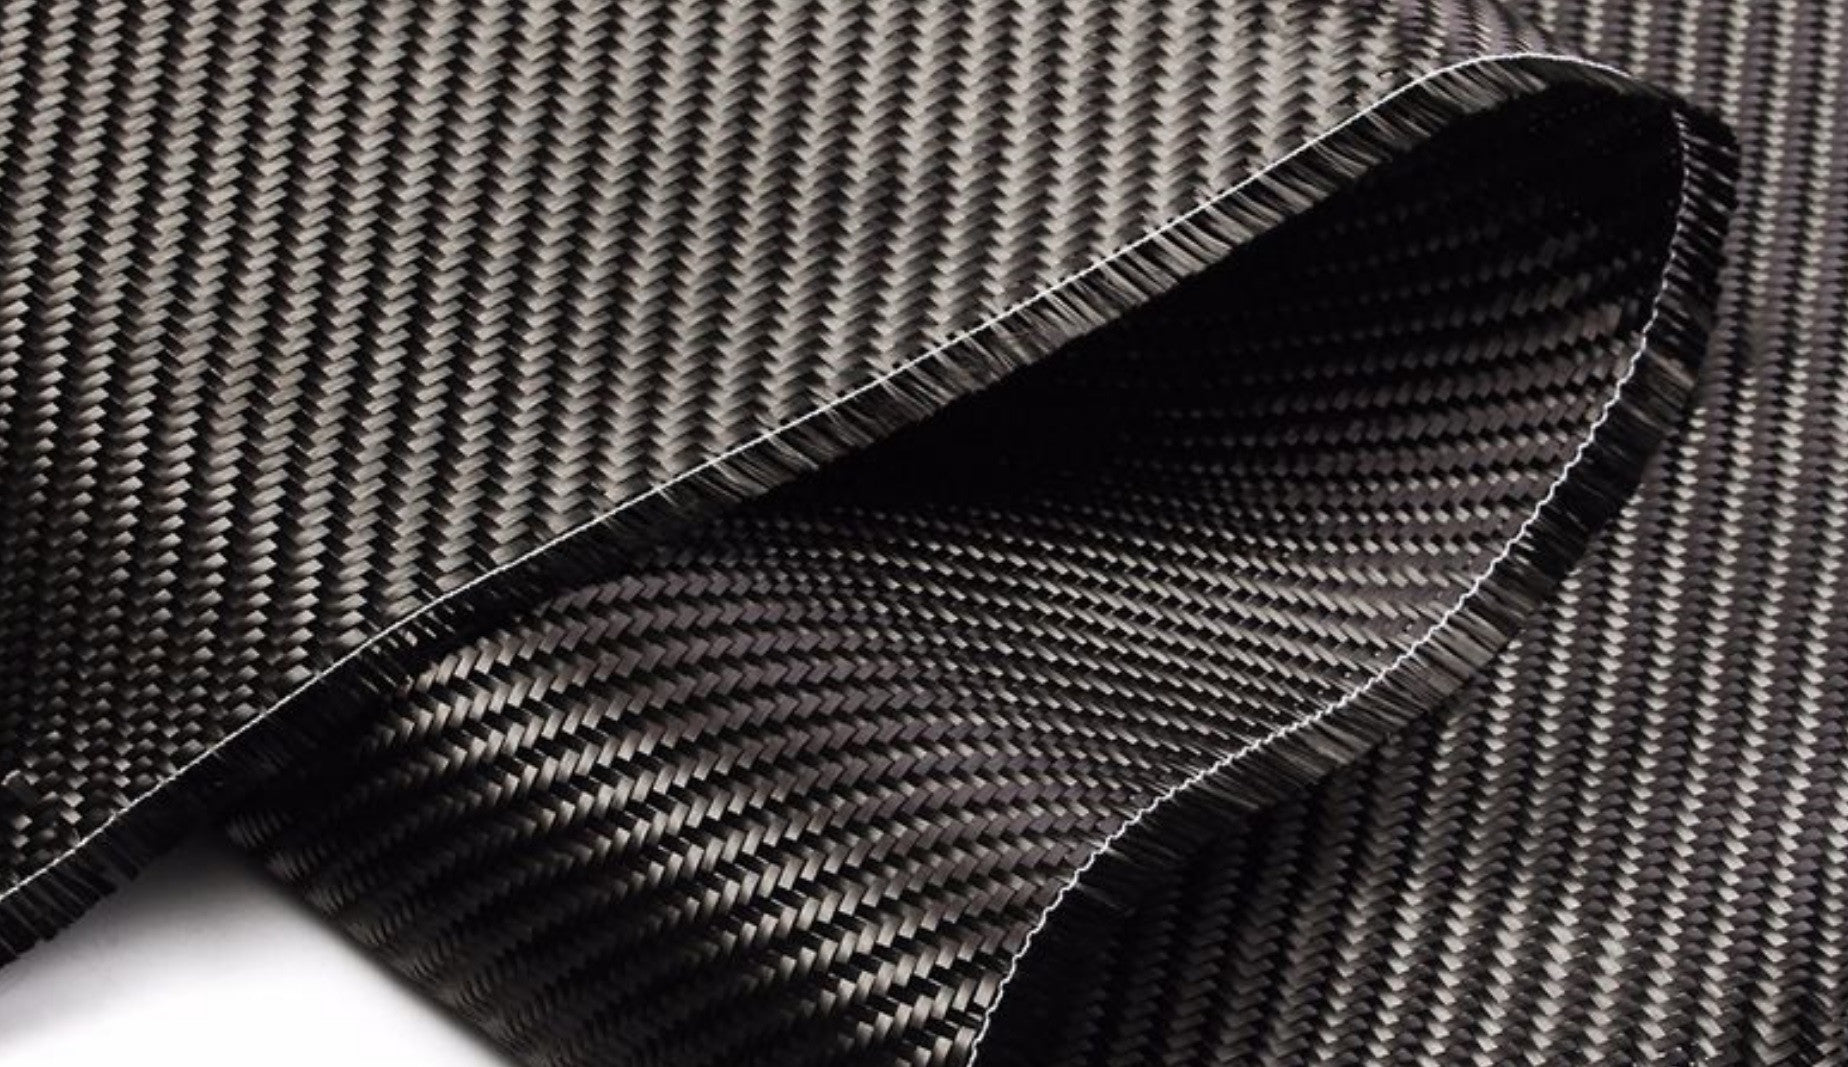 Example of carbon fiber fabric